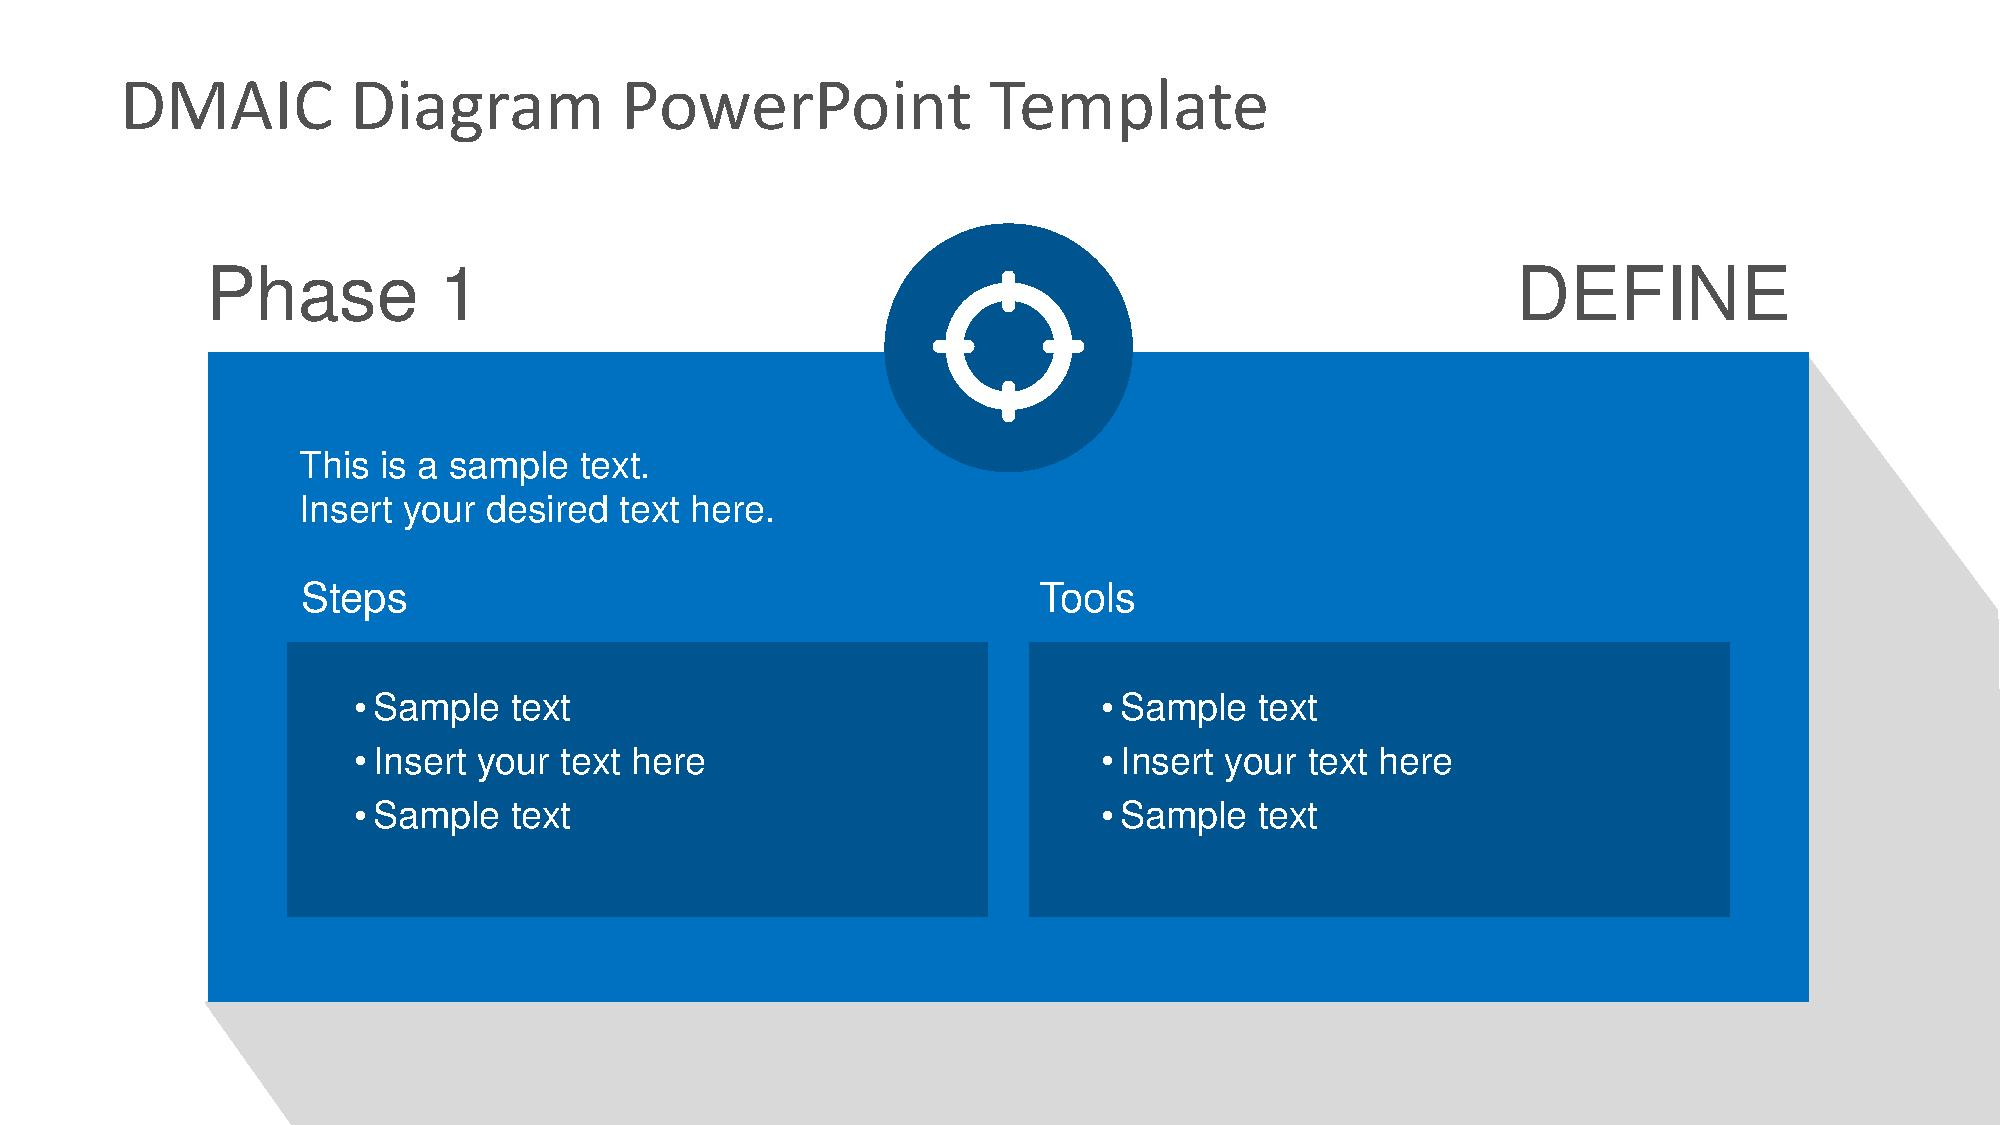 dmaic powerpoint template powerpoint presentation ppt, Powerpoint templates